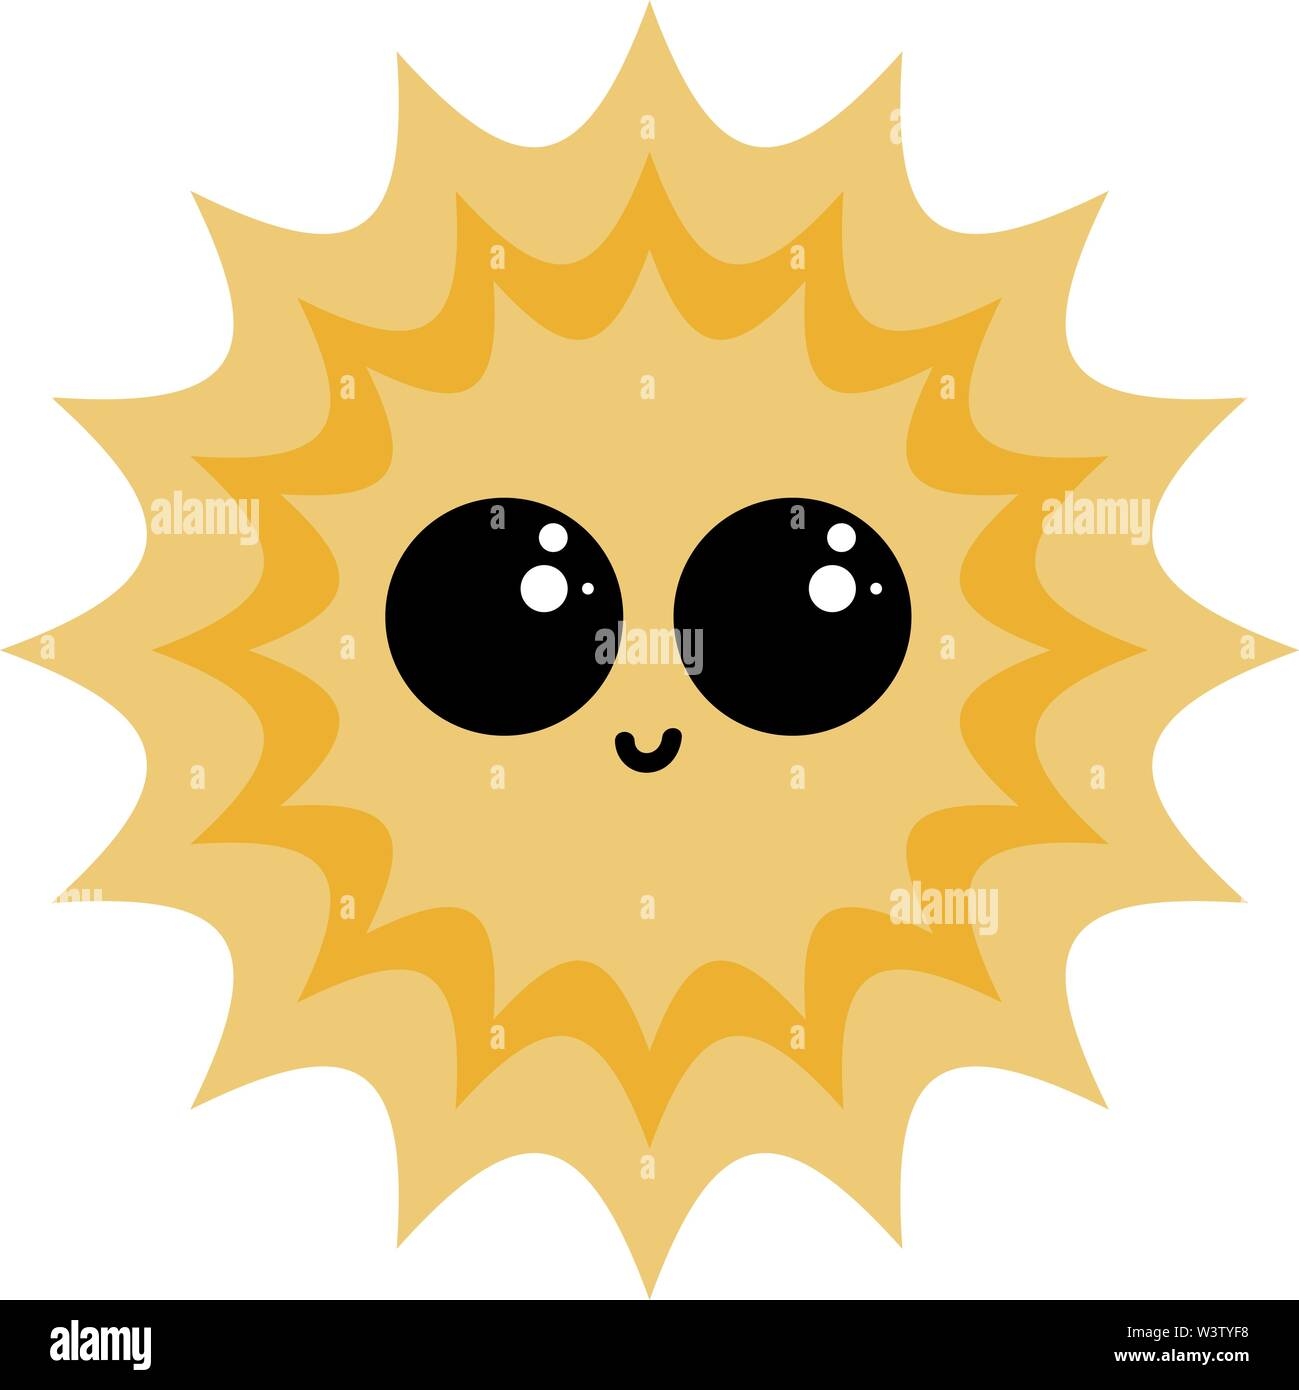 Cute happy sun, illustration, vector on white background. - Stock Image